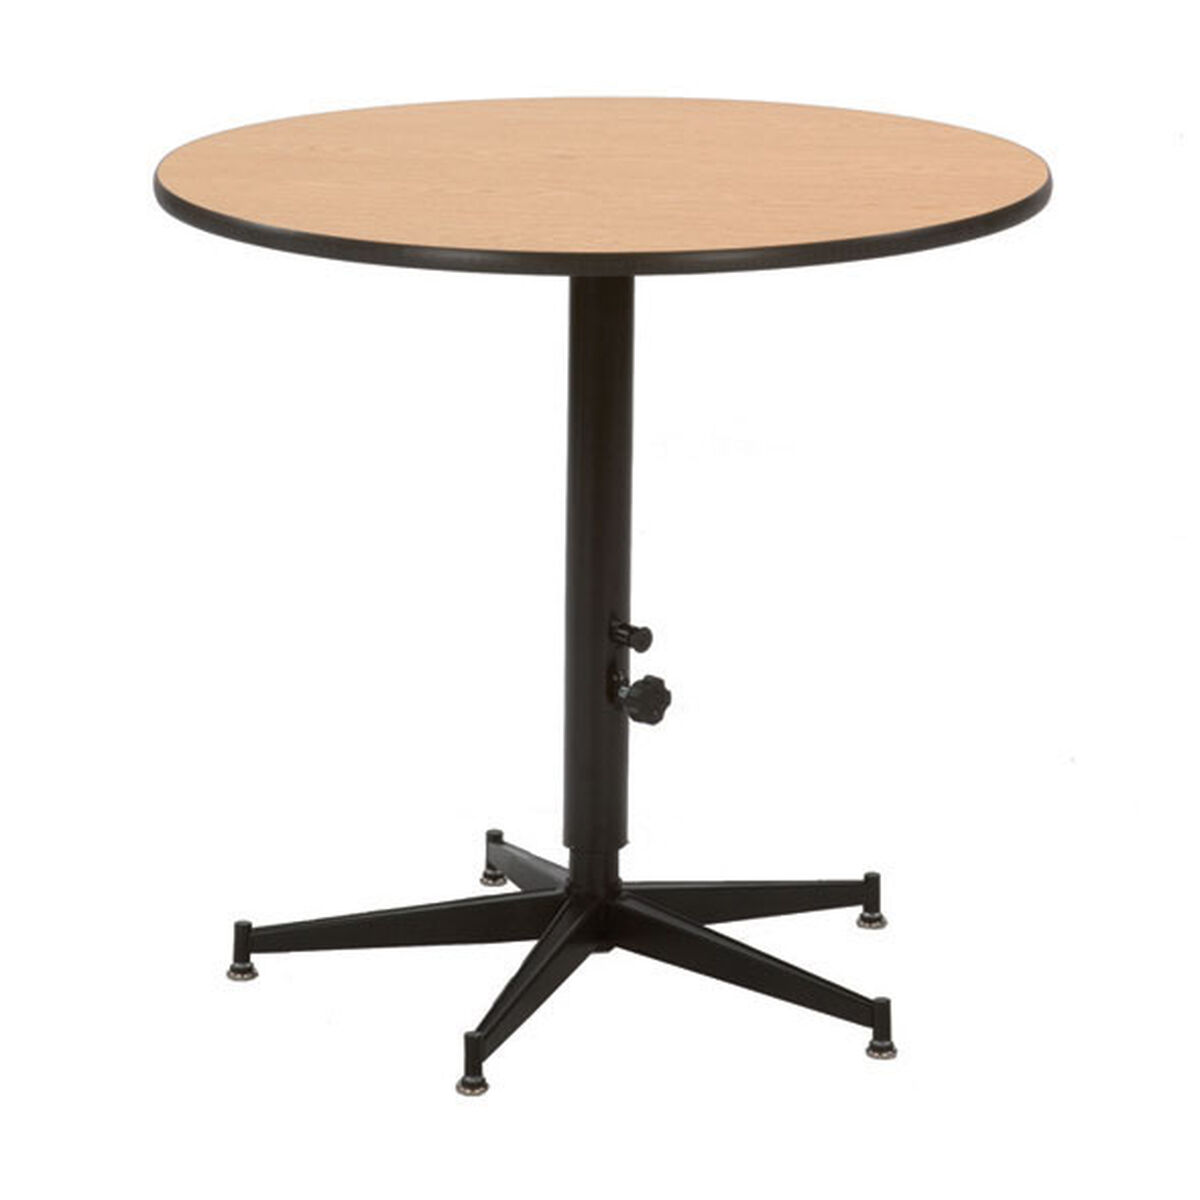 Plywood Tri Height Cocktail Table ACRE BestChiavariChairscom - Adjustable height cocktail table